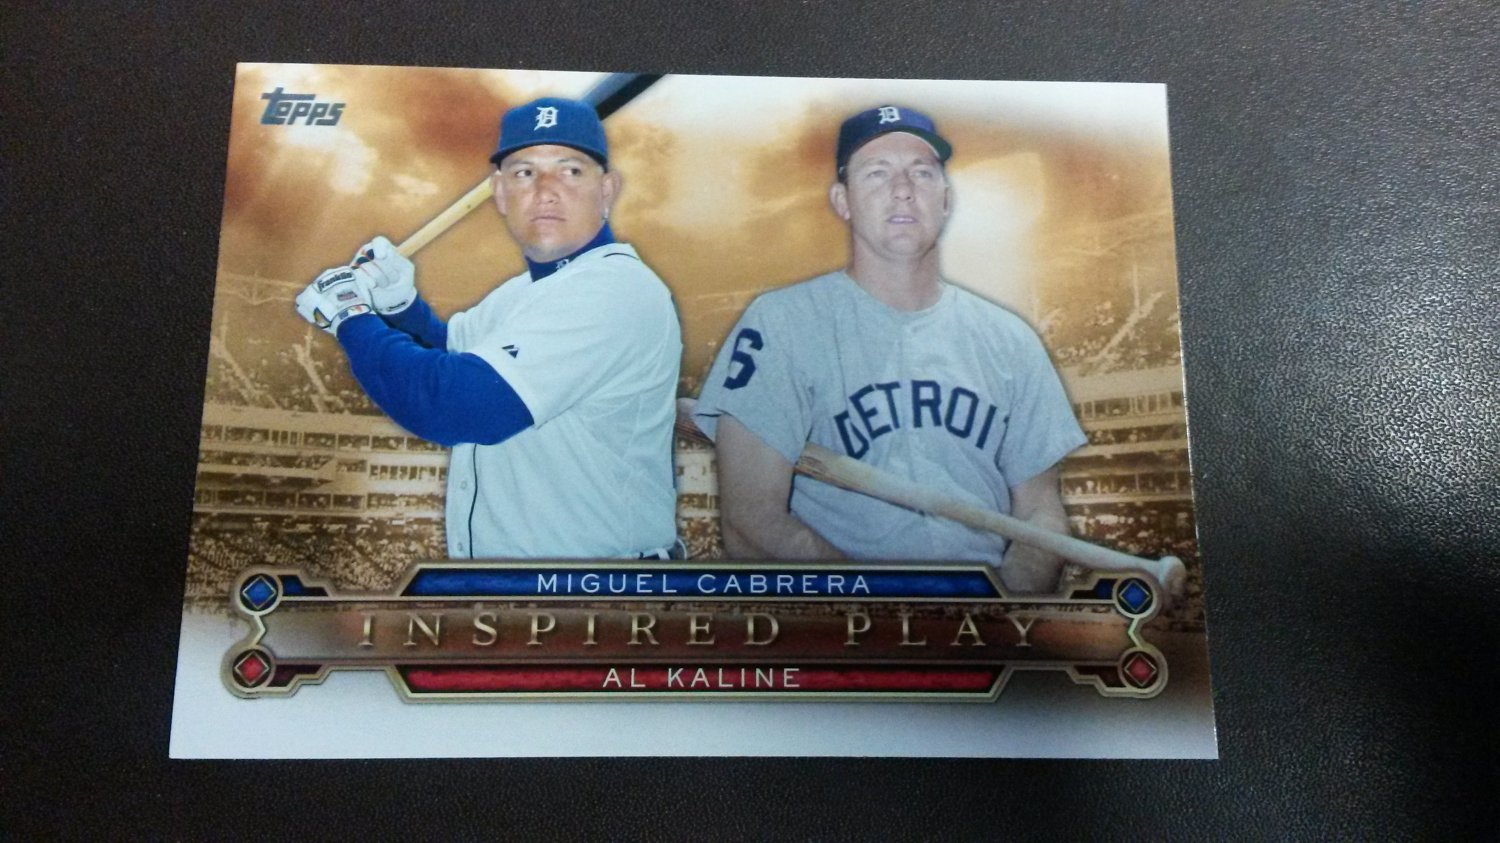 2015 Topps Inspired Play Al Kaline Miguel Cabrera Detroit Tigers # I-4